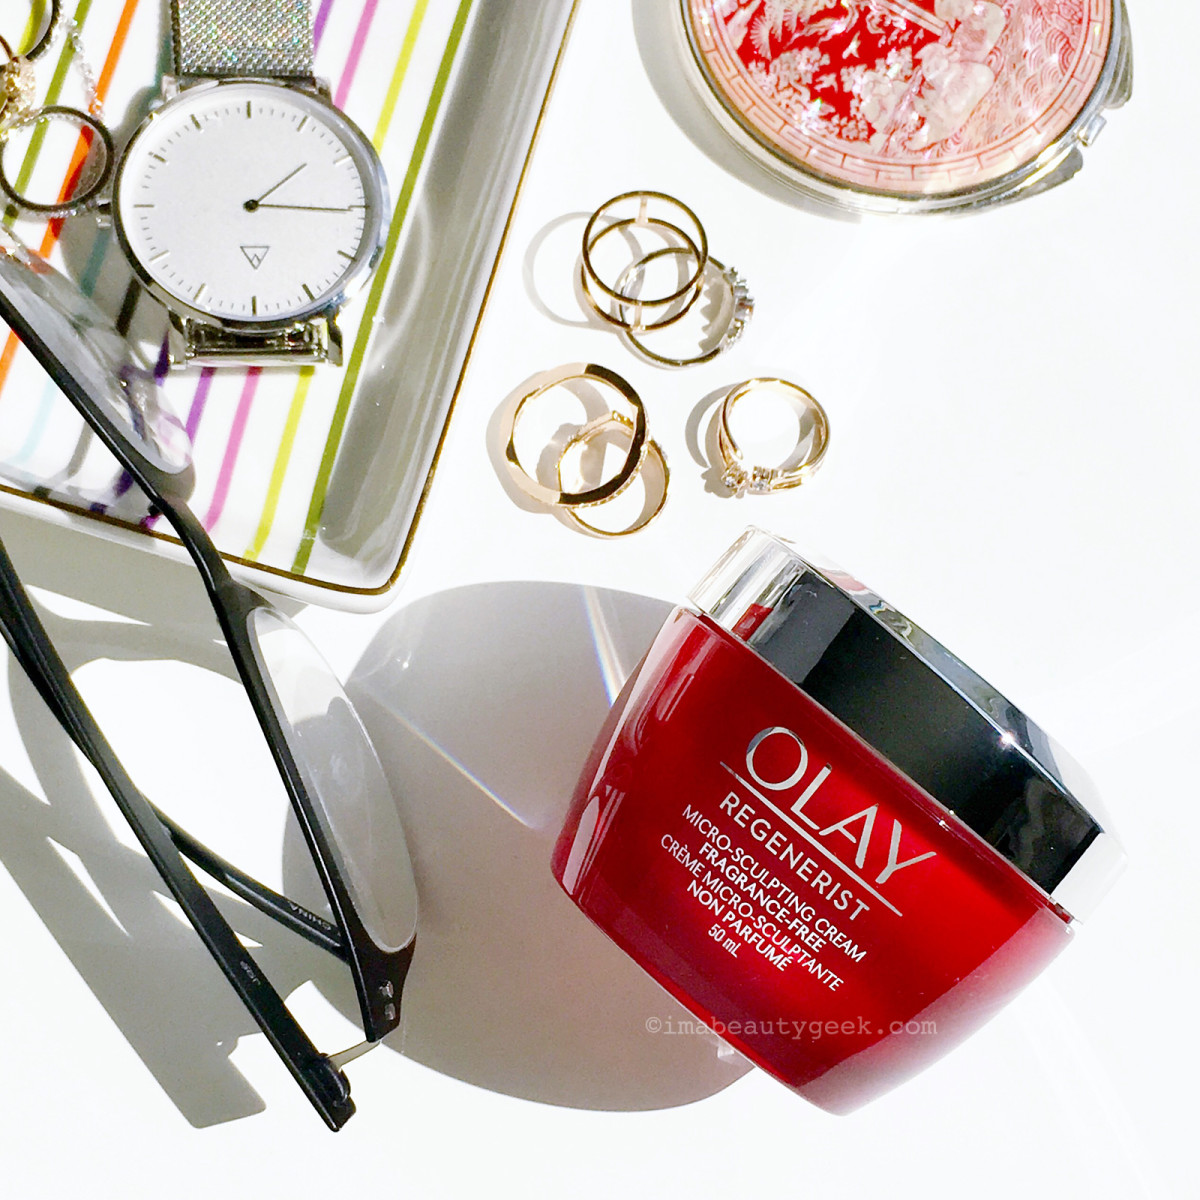 Olay Regenerist Micro-Sculpting Cream (fragrance-free version)